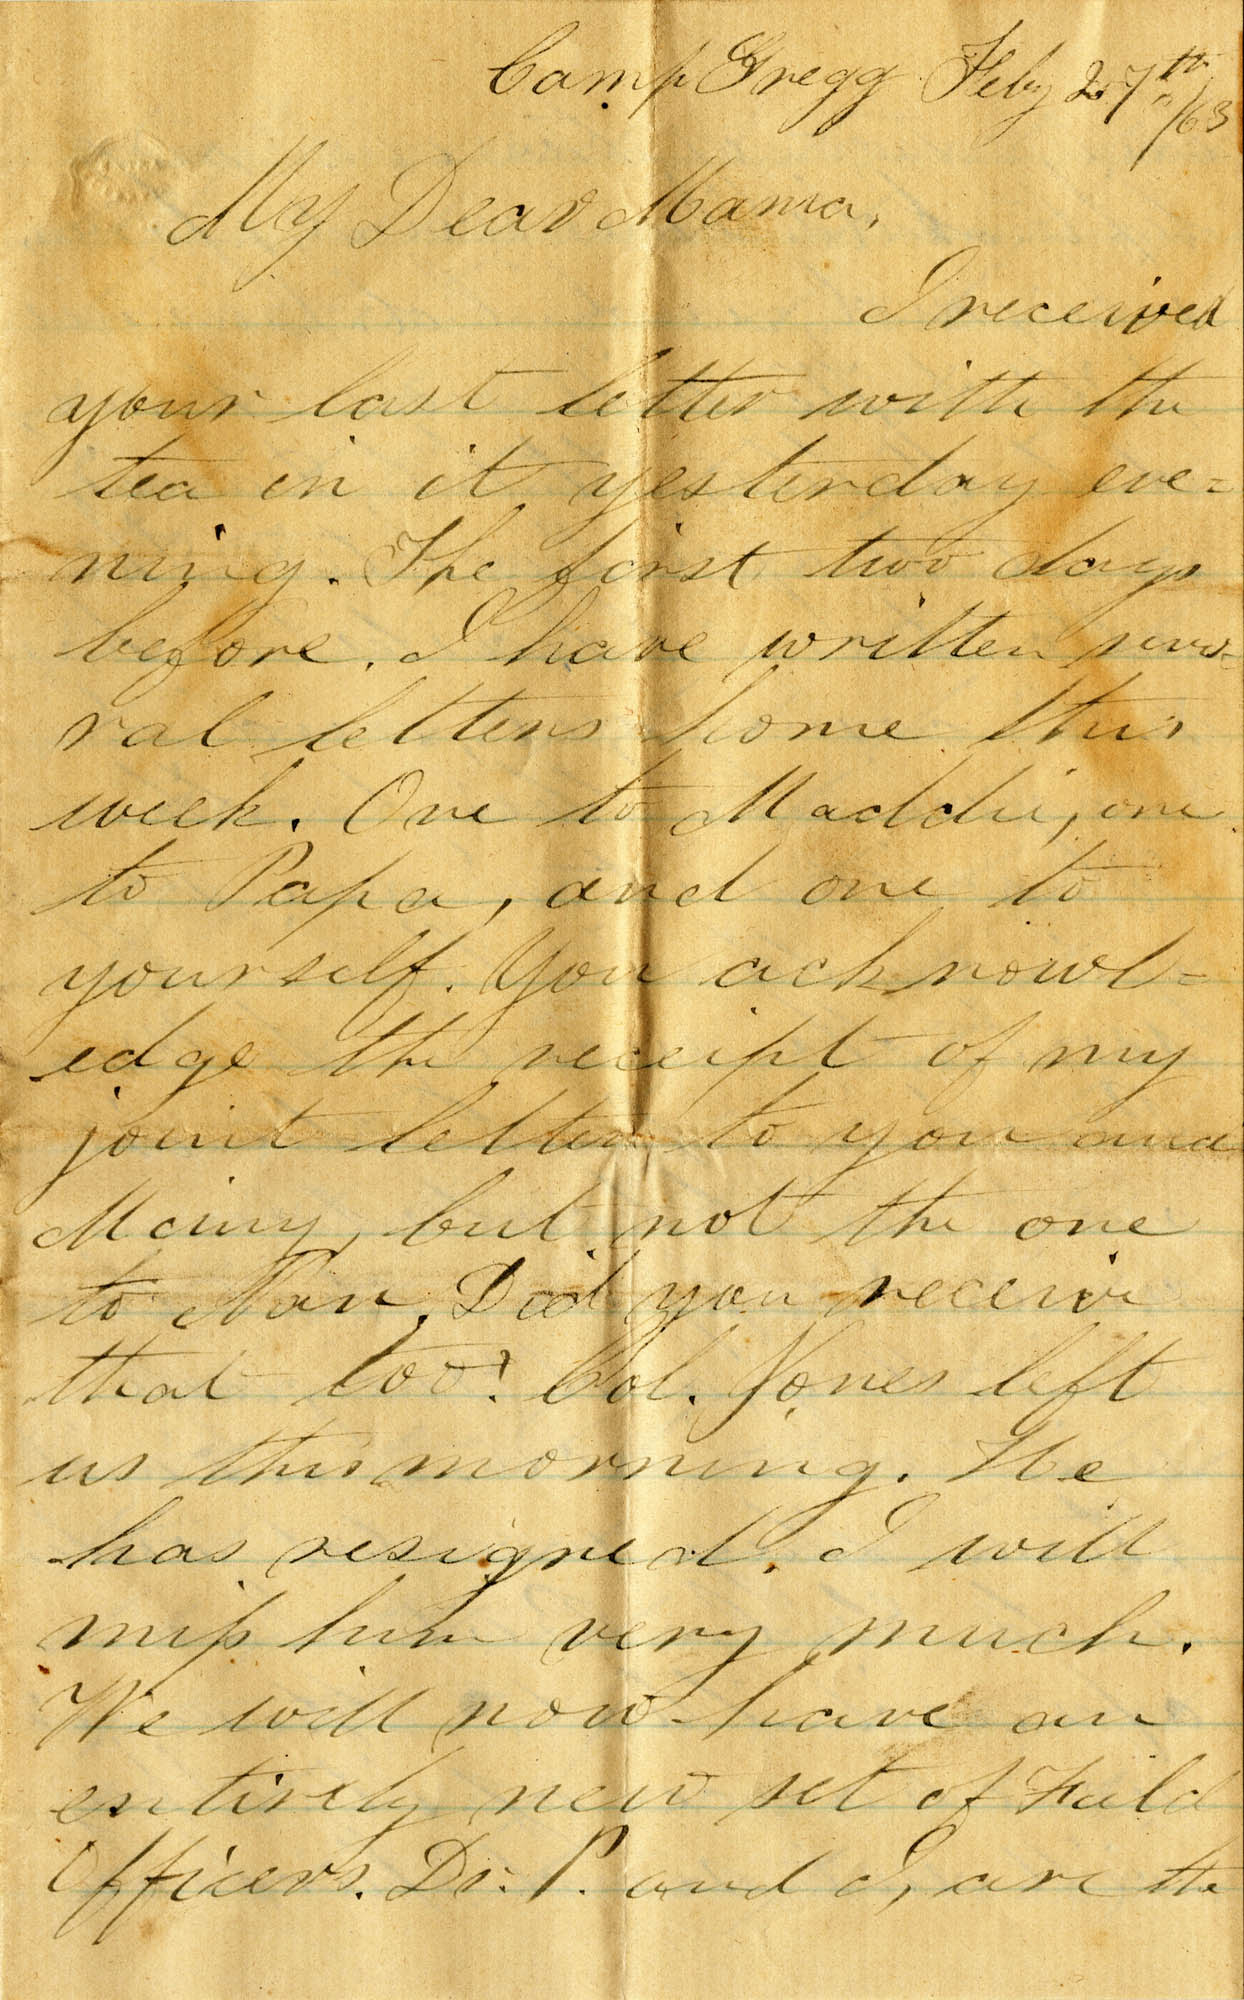 073. Willis Keith to Anna Bell Keith -- Feb. 27, 1863